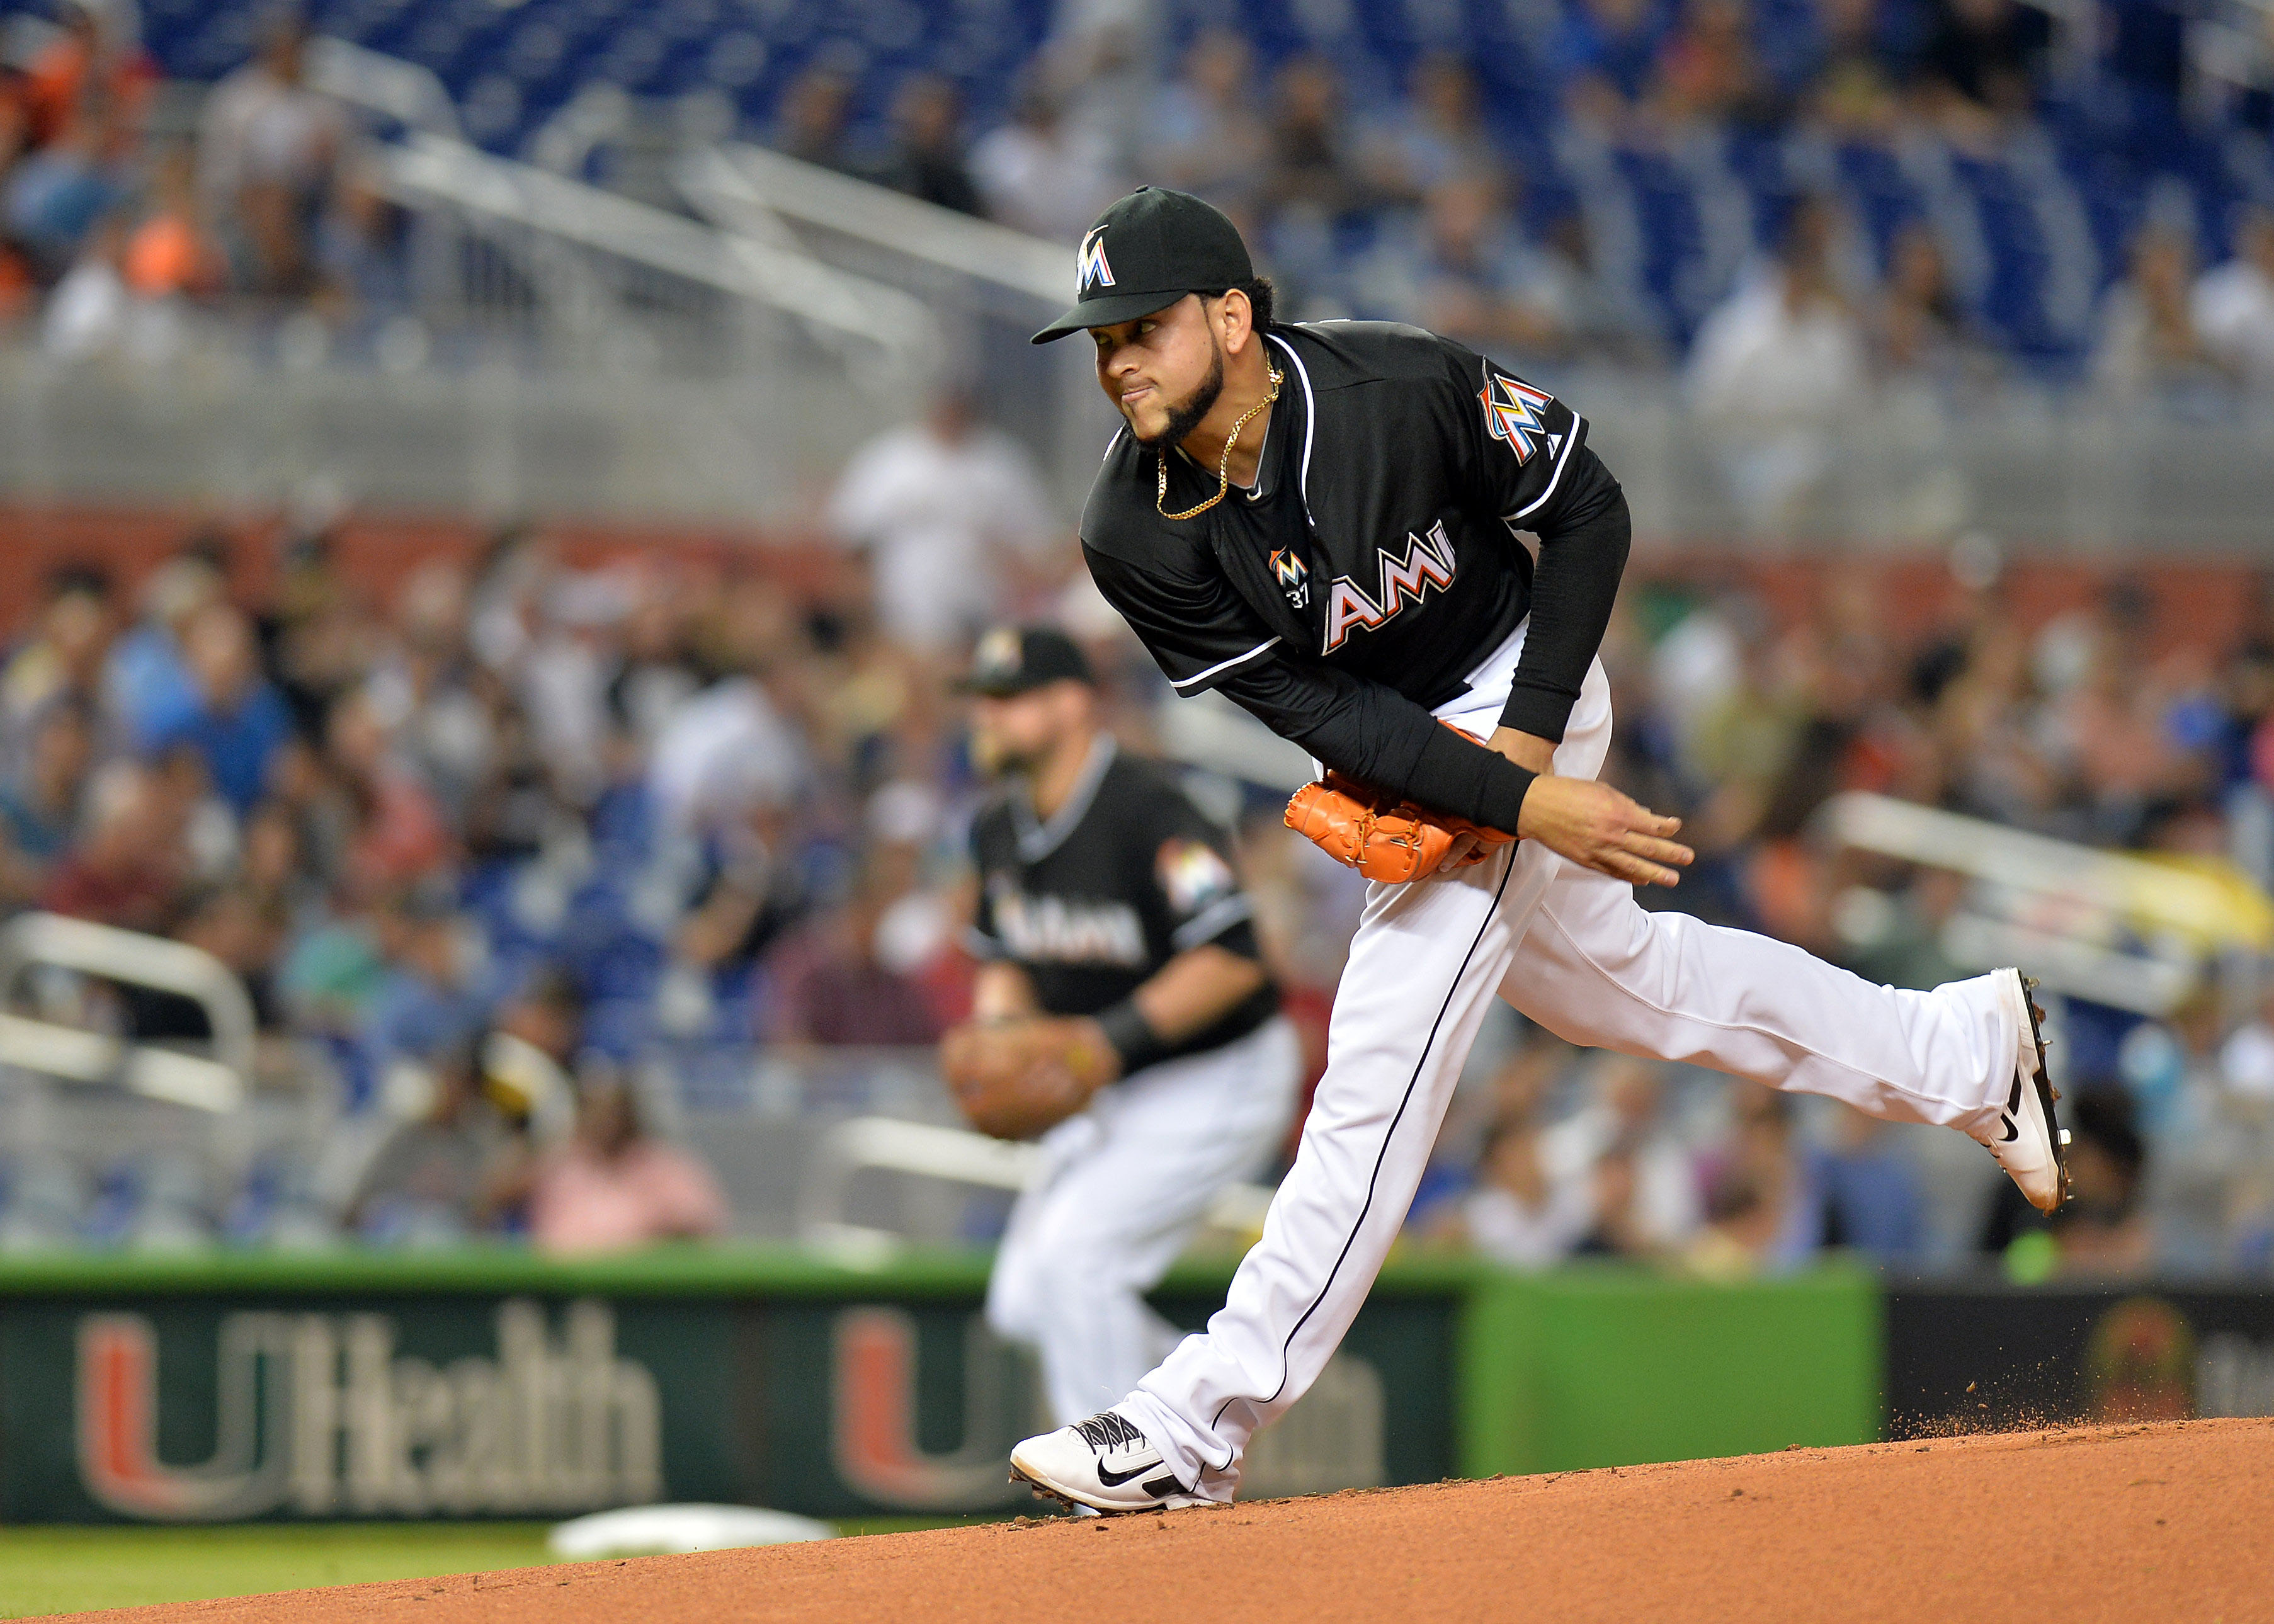 Henderson Alvarez led the majors in a pitching category -- and you don't know what it is